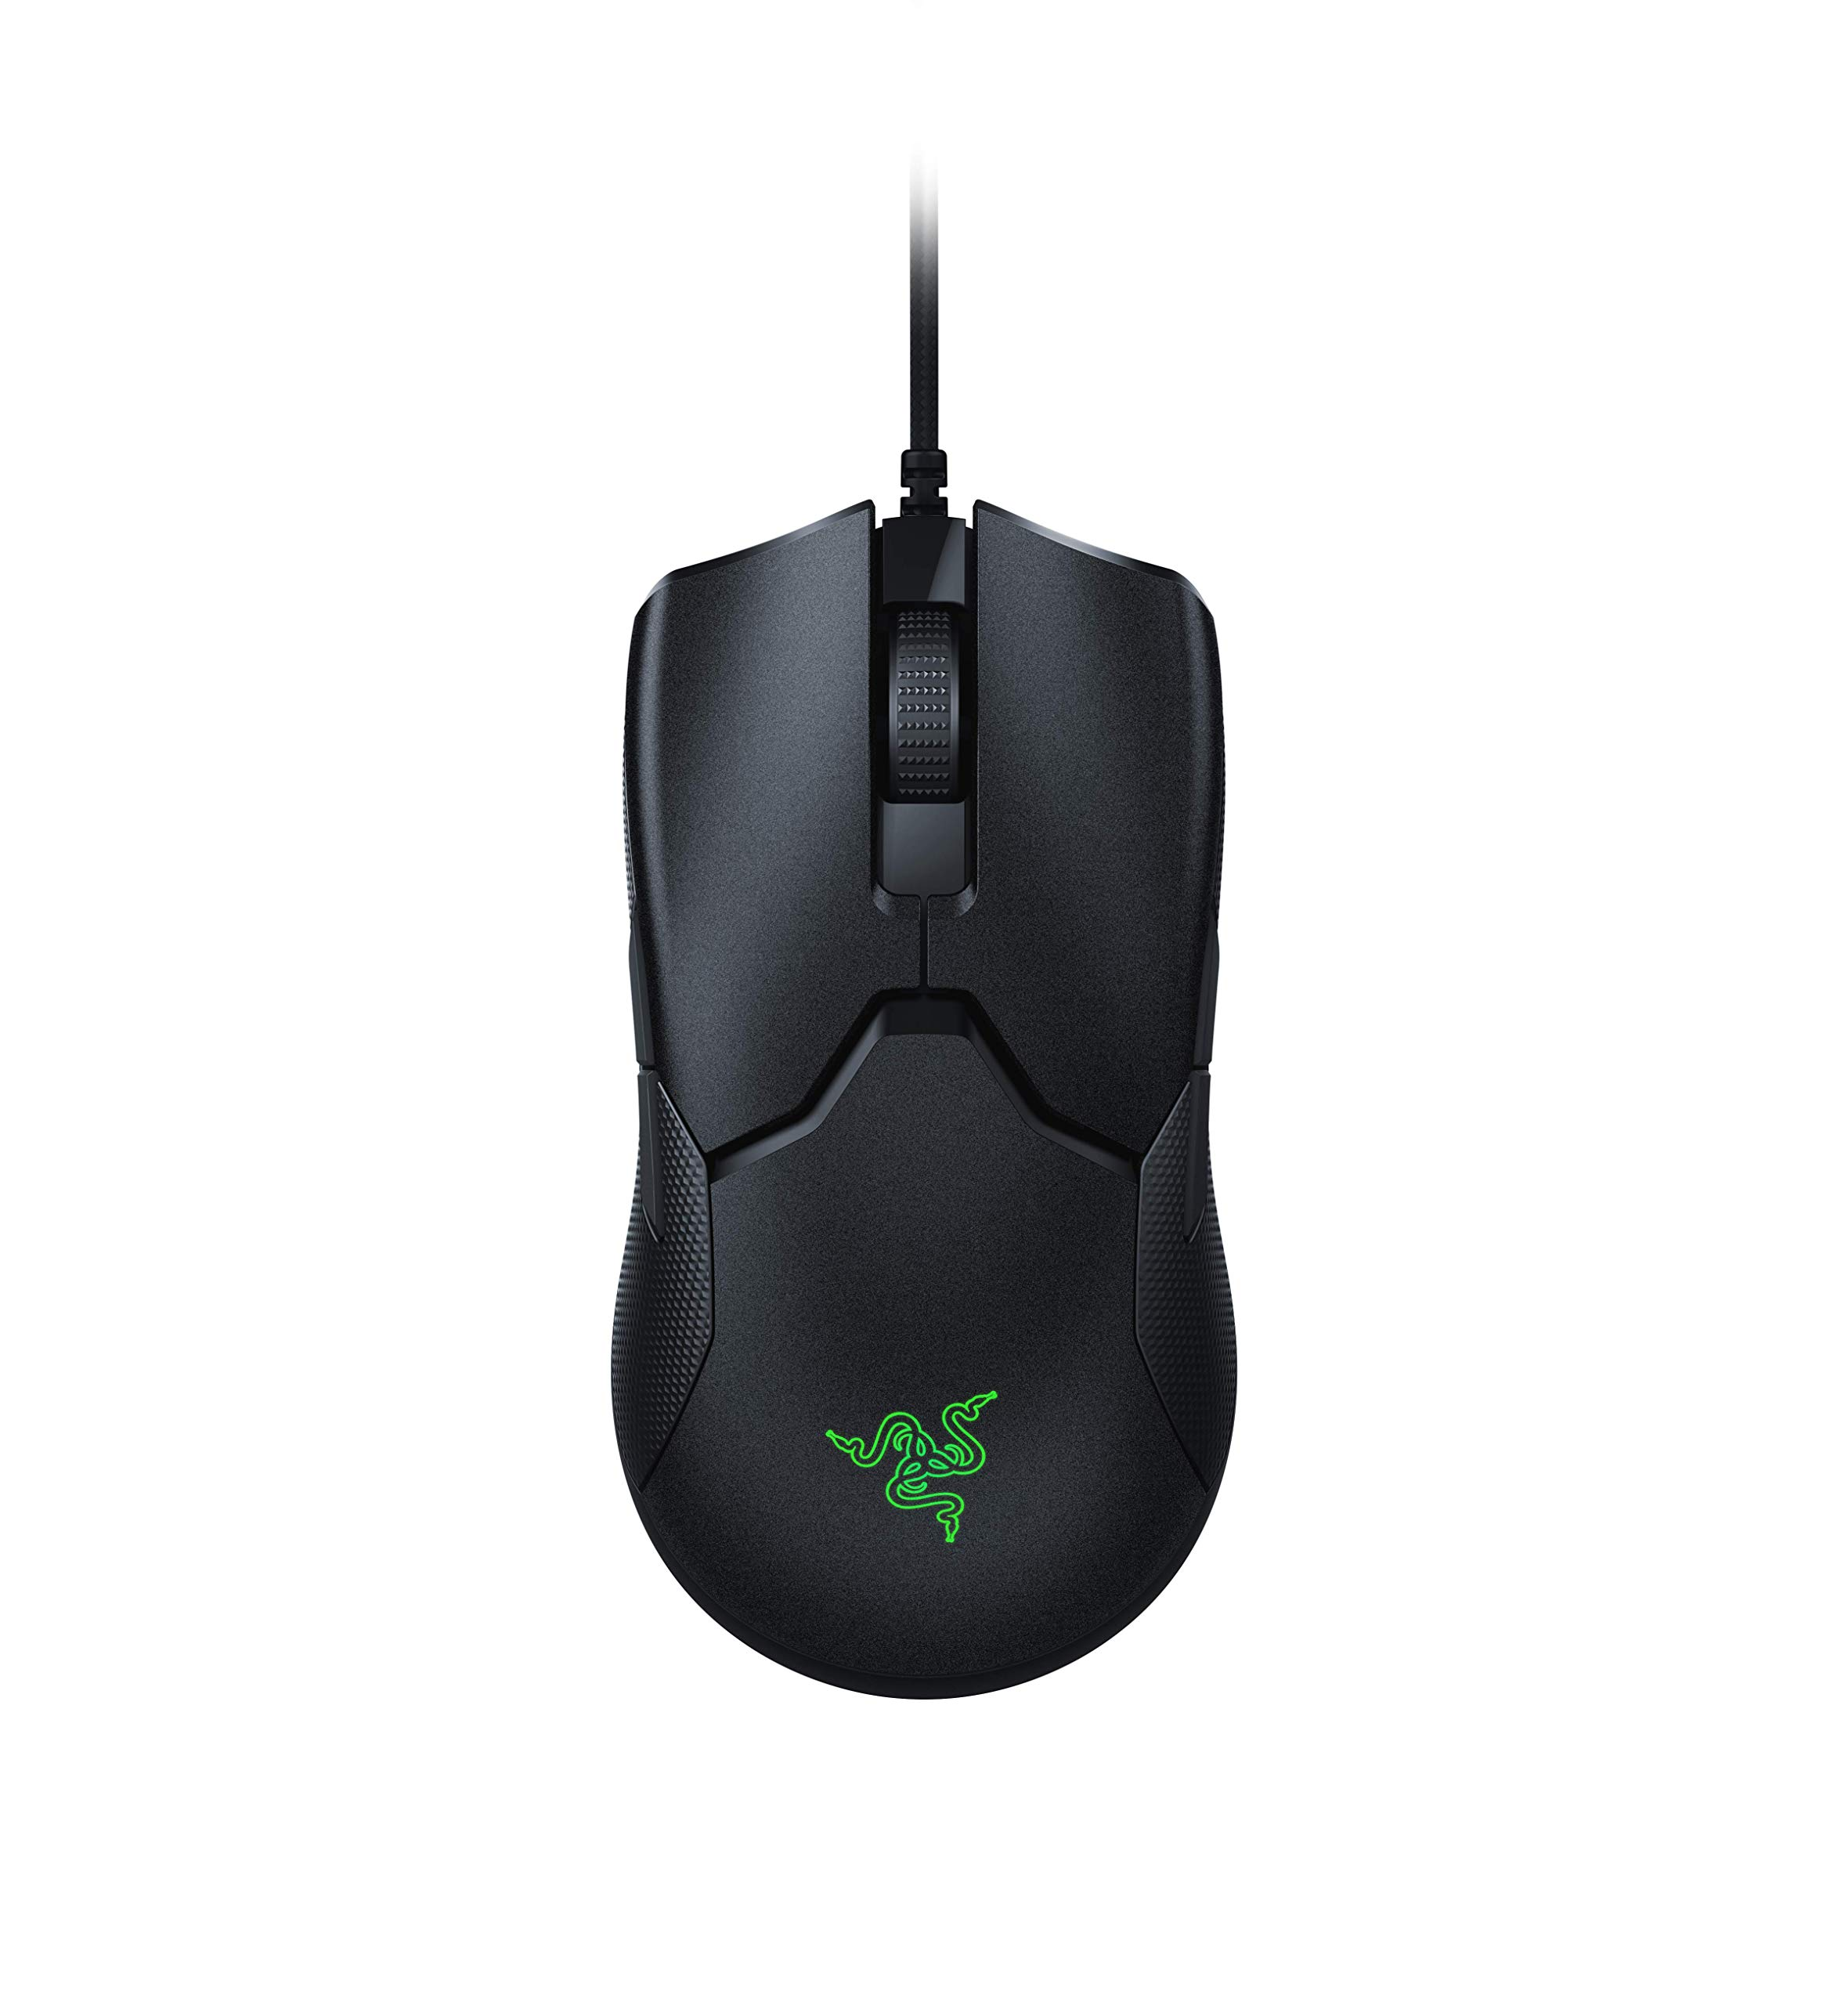 Razer Viper Ultralight Ambidextrous Wired Gaming Mouse: Fastest Mouse Switch in Gaming - 16,000 DPI Optical Sensor - Chroma RGB Lighting - 8 Programmable Buttons - Drag-Free Cord by Razer